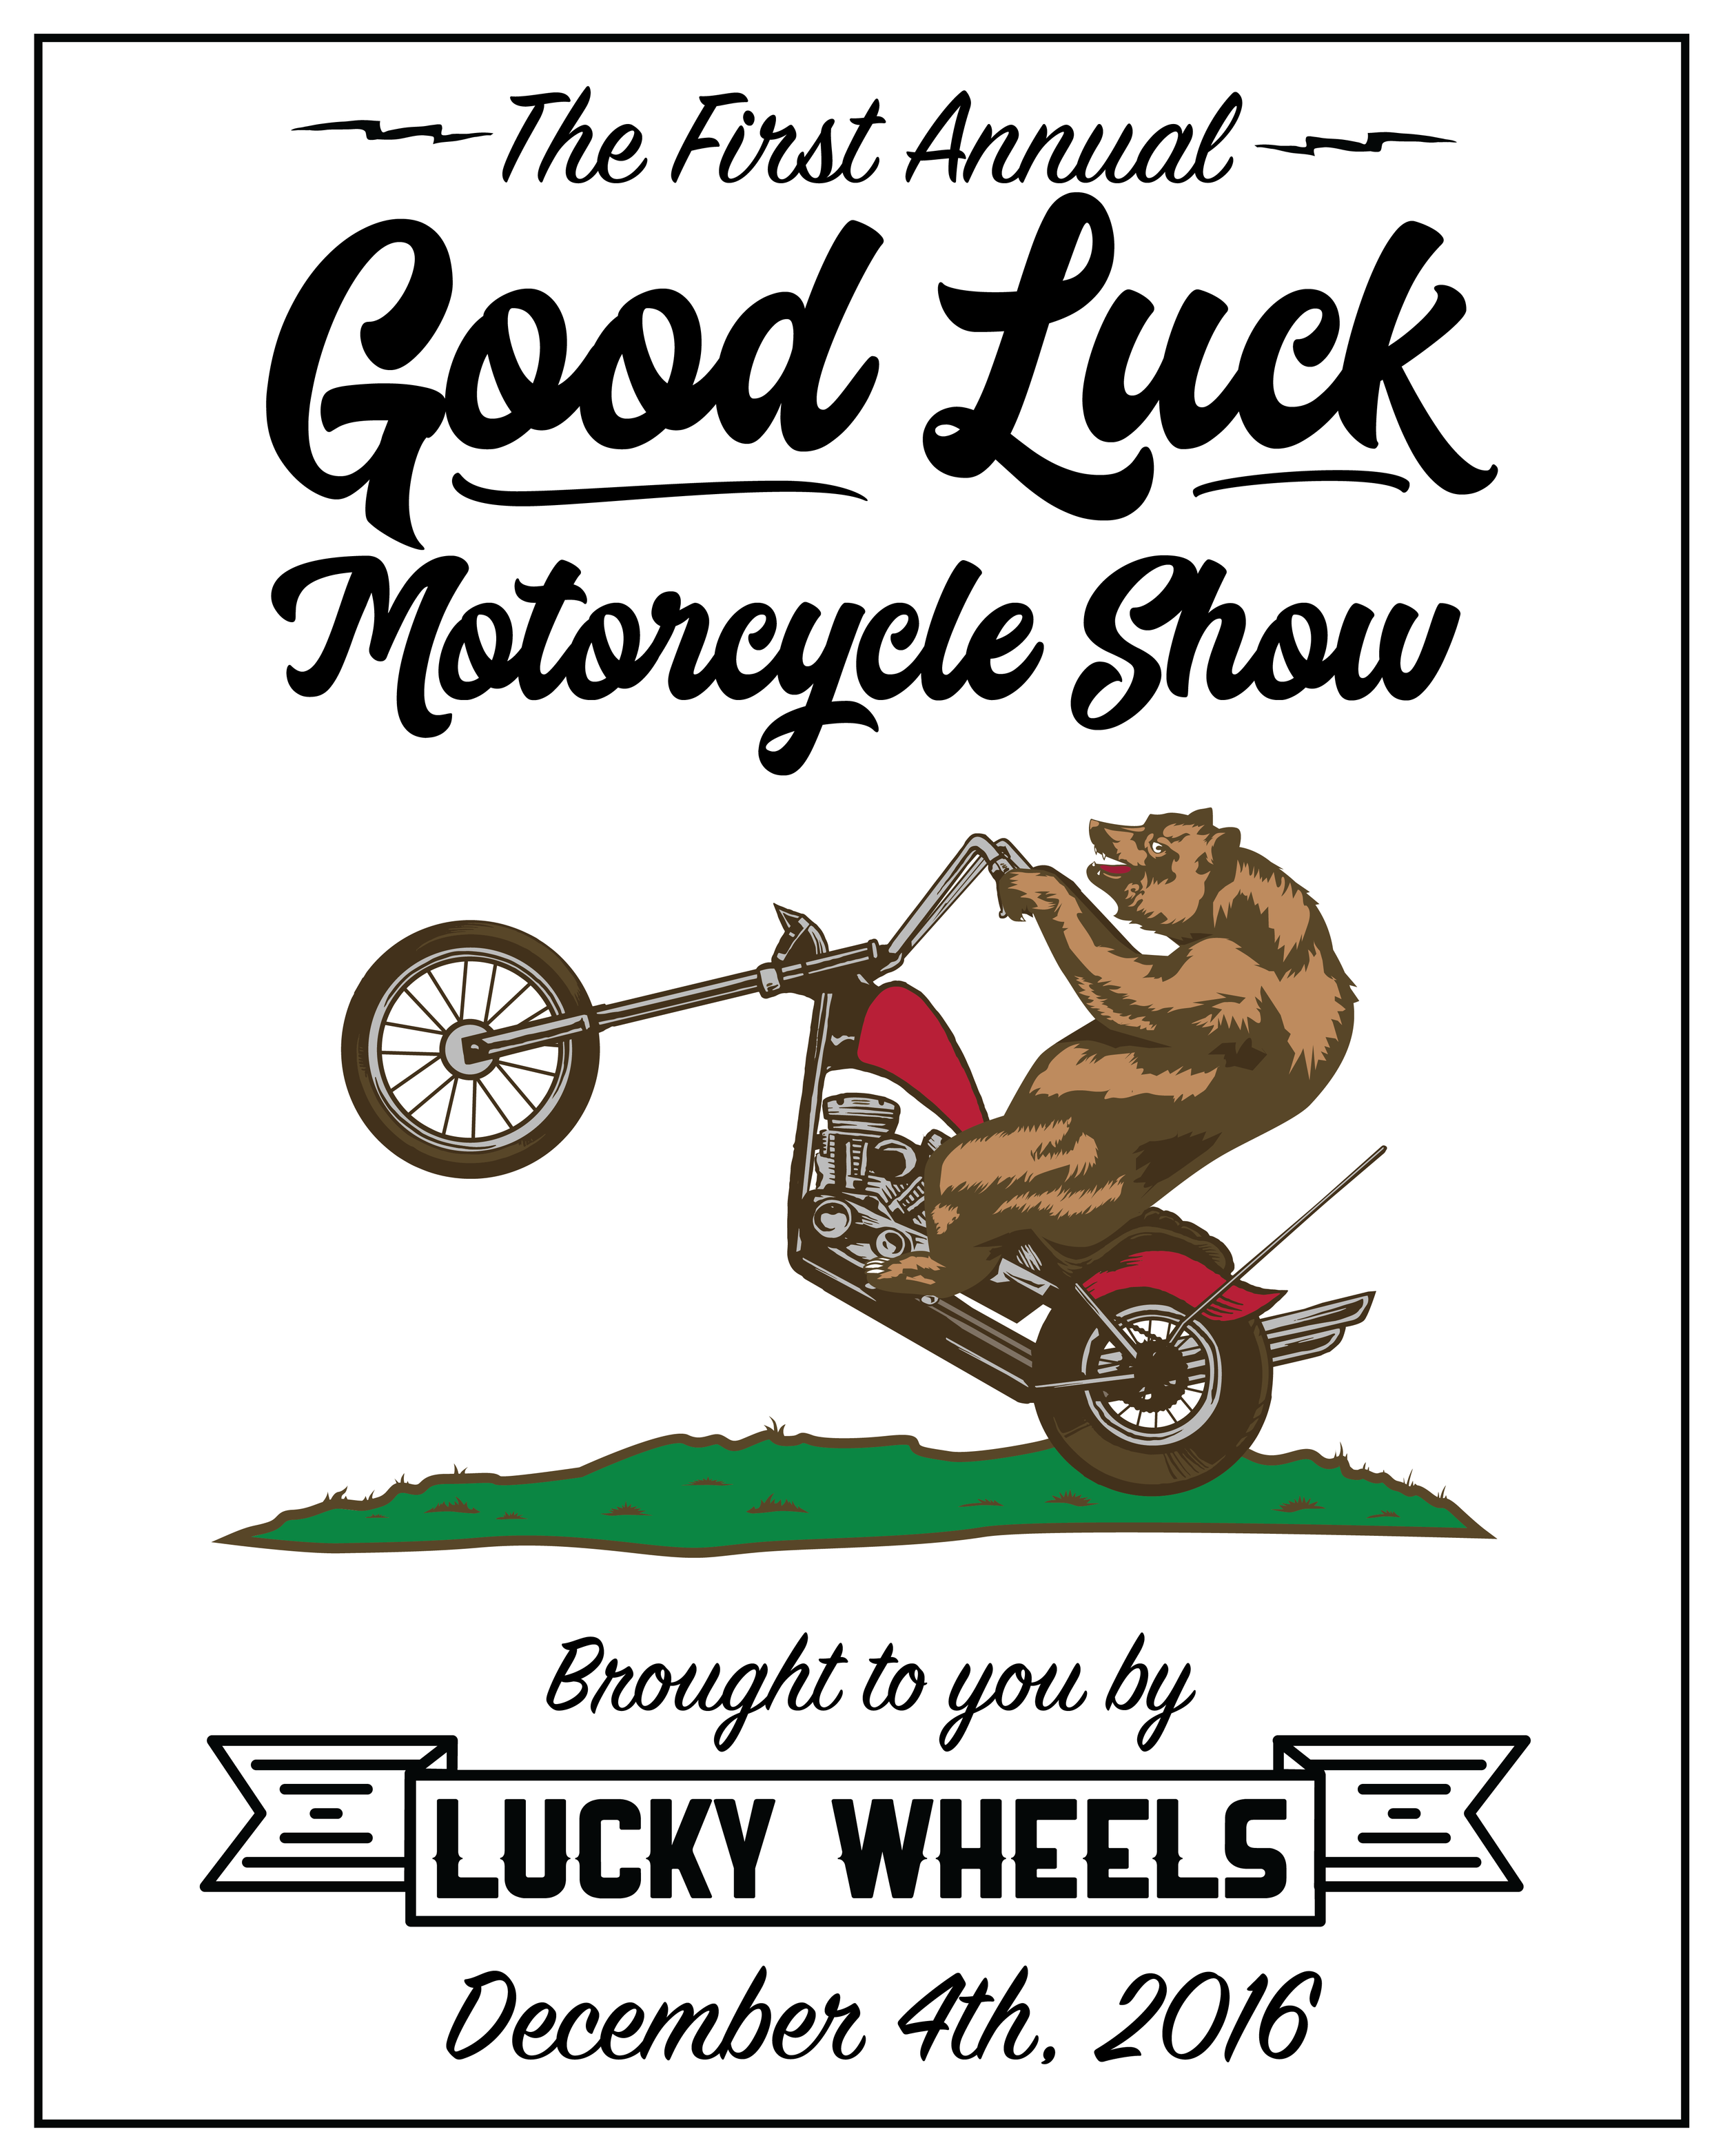 December 4th marks the one year anniversary of Lucky Wheels! What a year it's been. We've seen countless friendships made, knowledge shared, skills learned, and bikes built.     So - we're hosting a motorcycle show to commemorate just that. The skill, craftsmanship, and most of all, the DIY spirit that we're all about. We'll be showing off some of the best bikes that got built at Lucky Wheels this year, as well as some bikes from other builders that embody what we're all about. Doing it yourself! Stay tuned for more info about the show. And mark your calendar!    You won't want to miss this one!